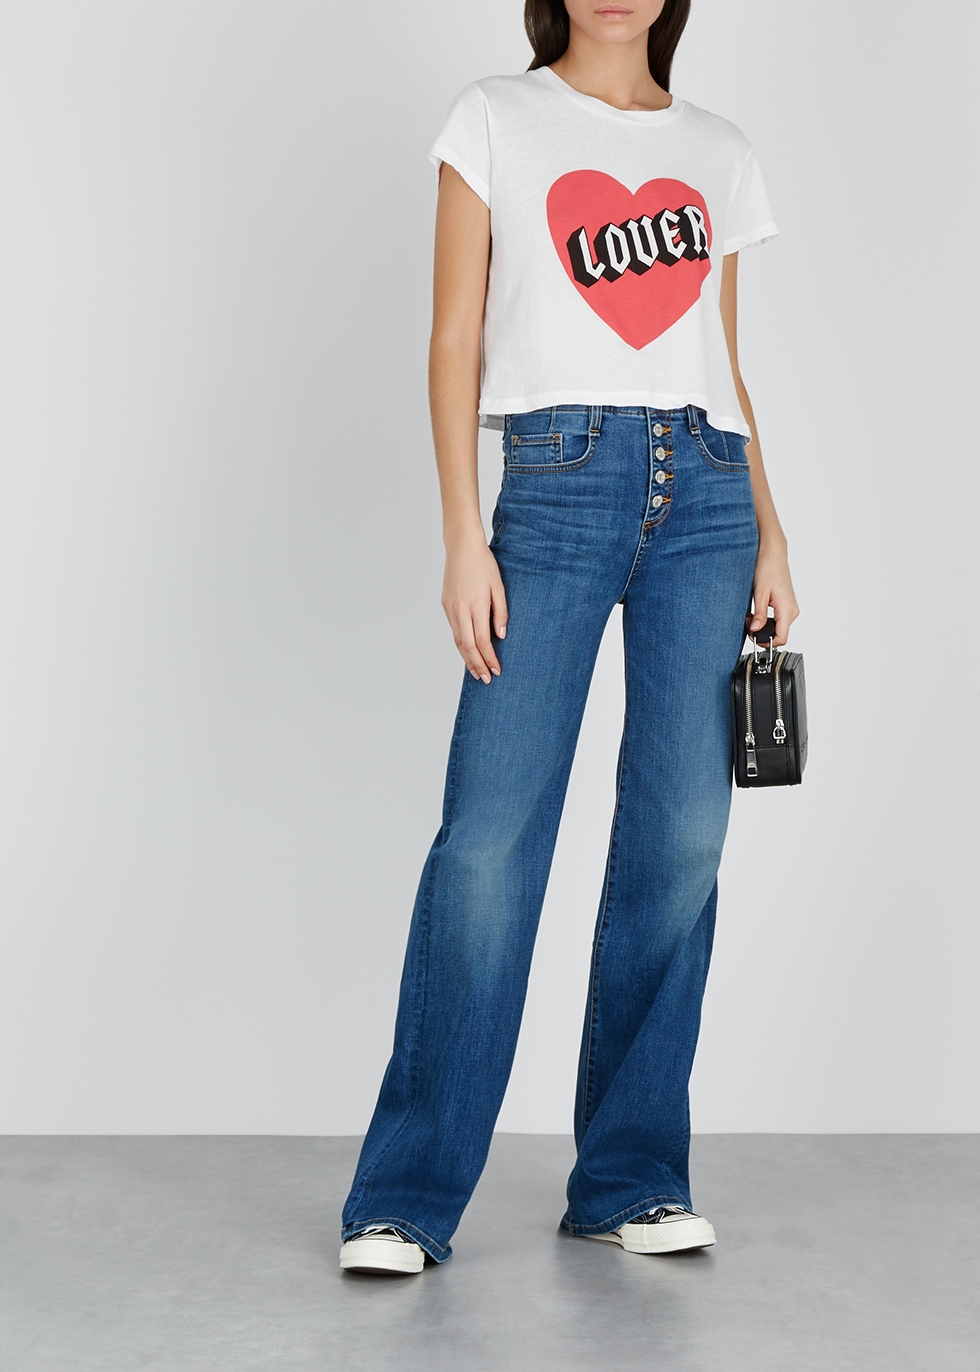 Lover Baby printed jersey T-shirt - Wildfox